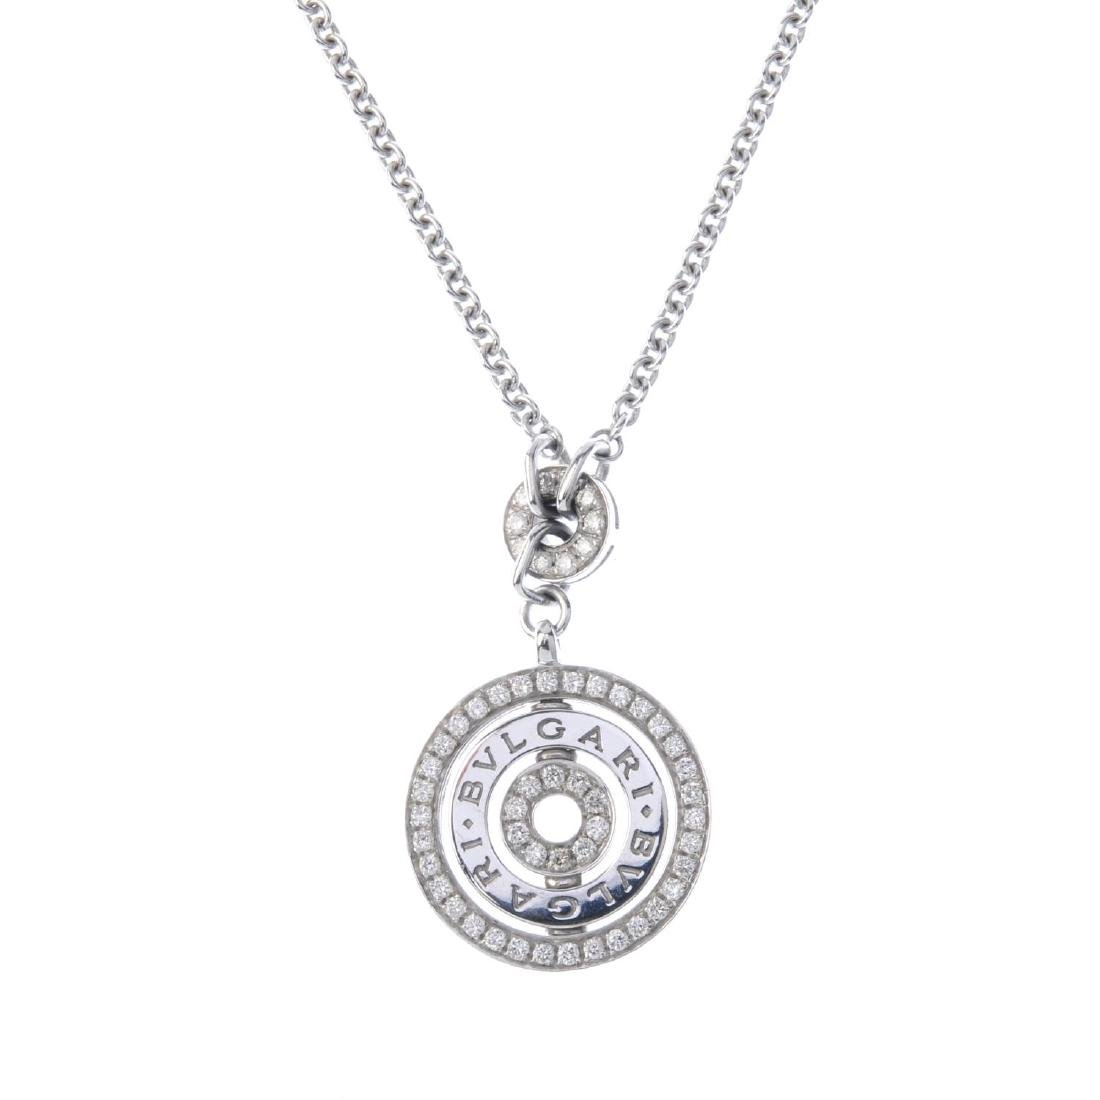 BULGARI - a diamond 'Cerchi' pendant. Designed as an